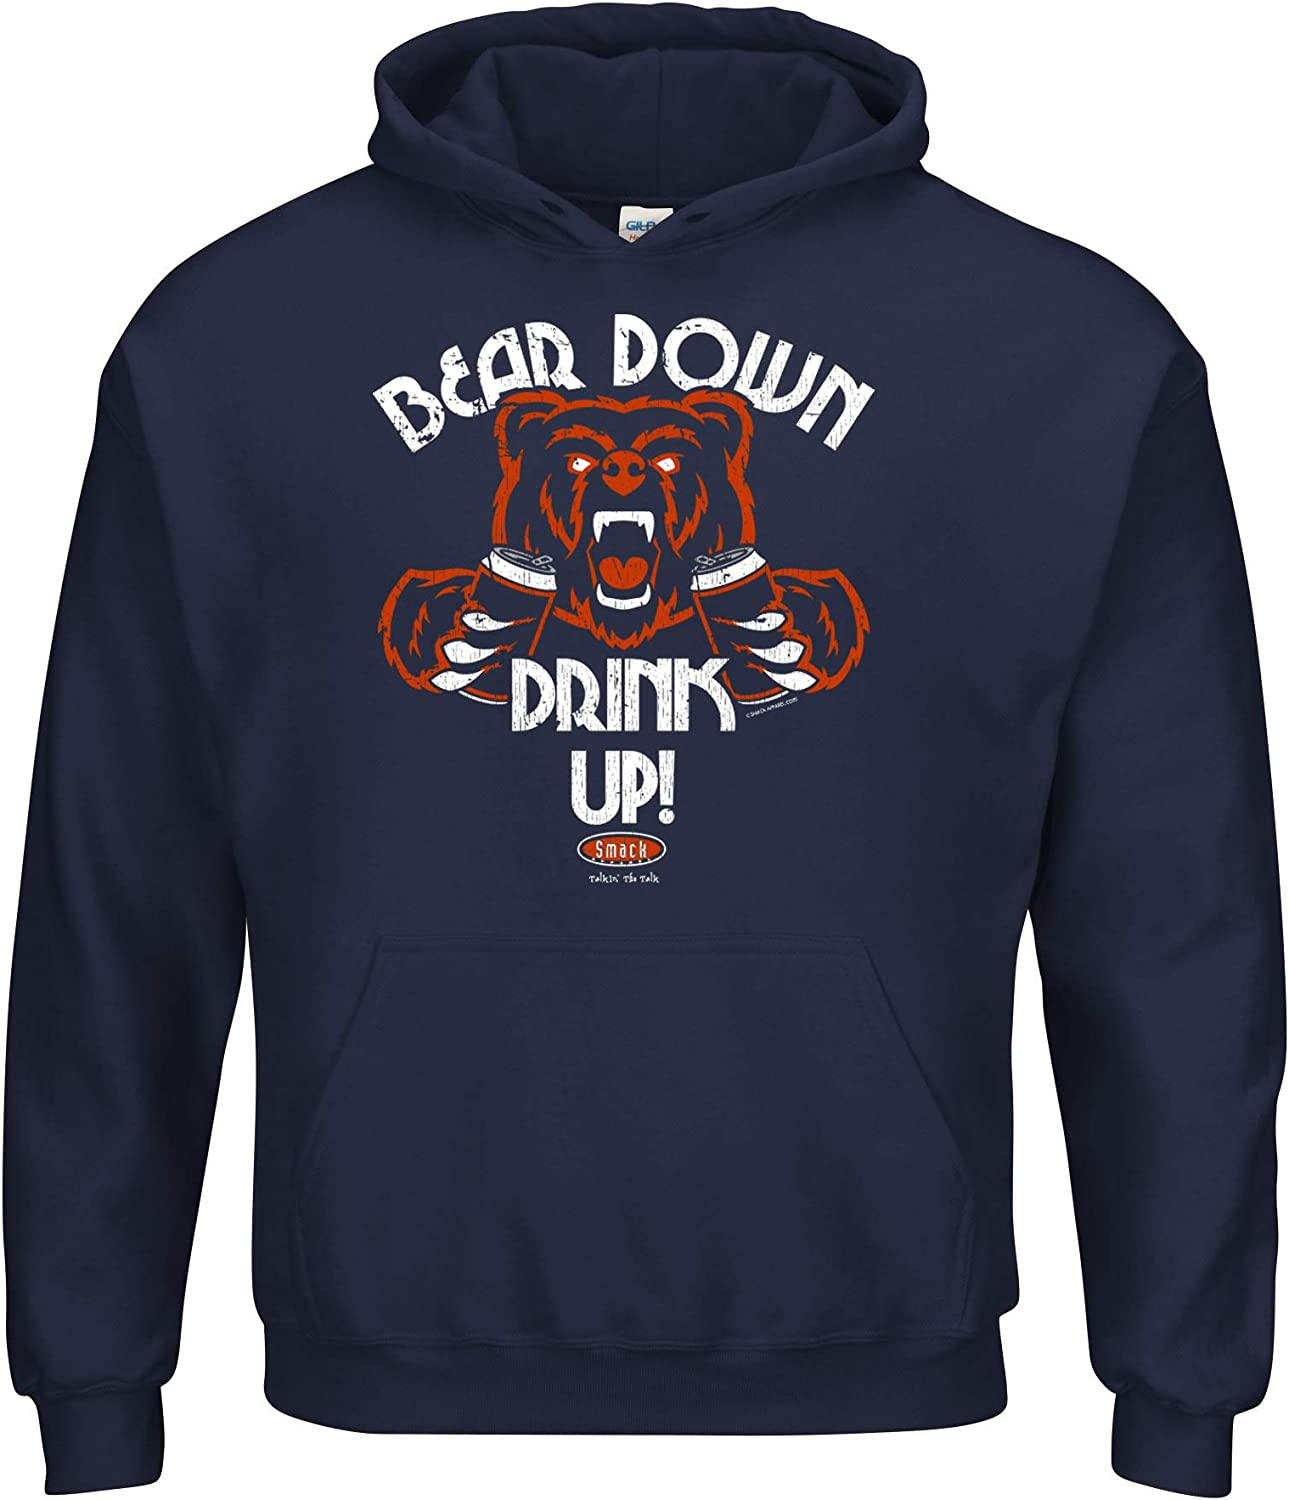 Smack Apparel Chicago Football Fans. Surprise price Down New Shipping Free Shipping T-Shirt Up Bear Drink